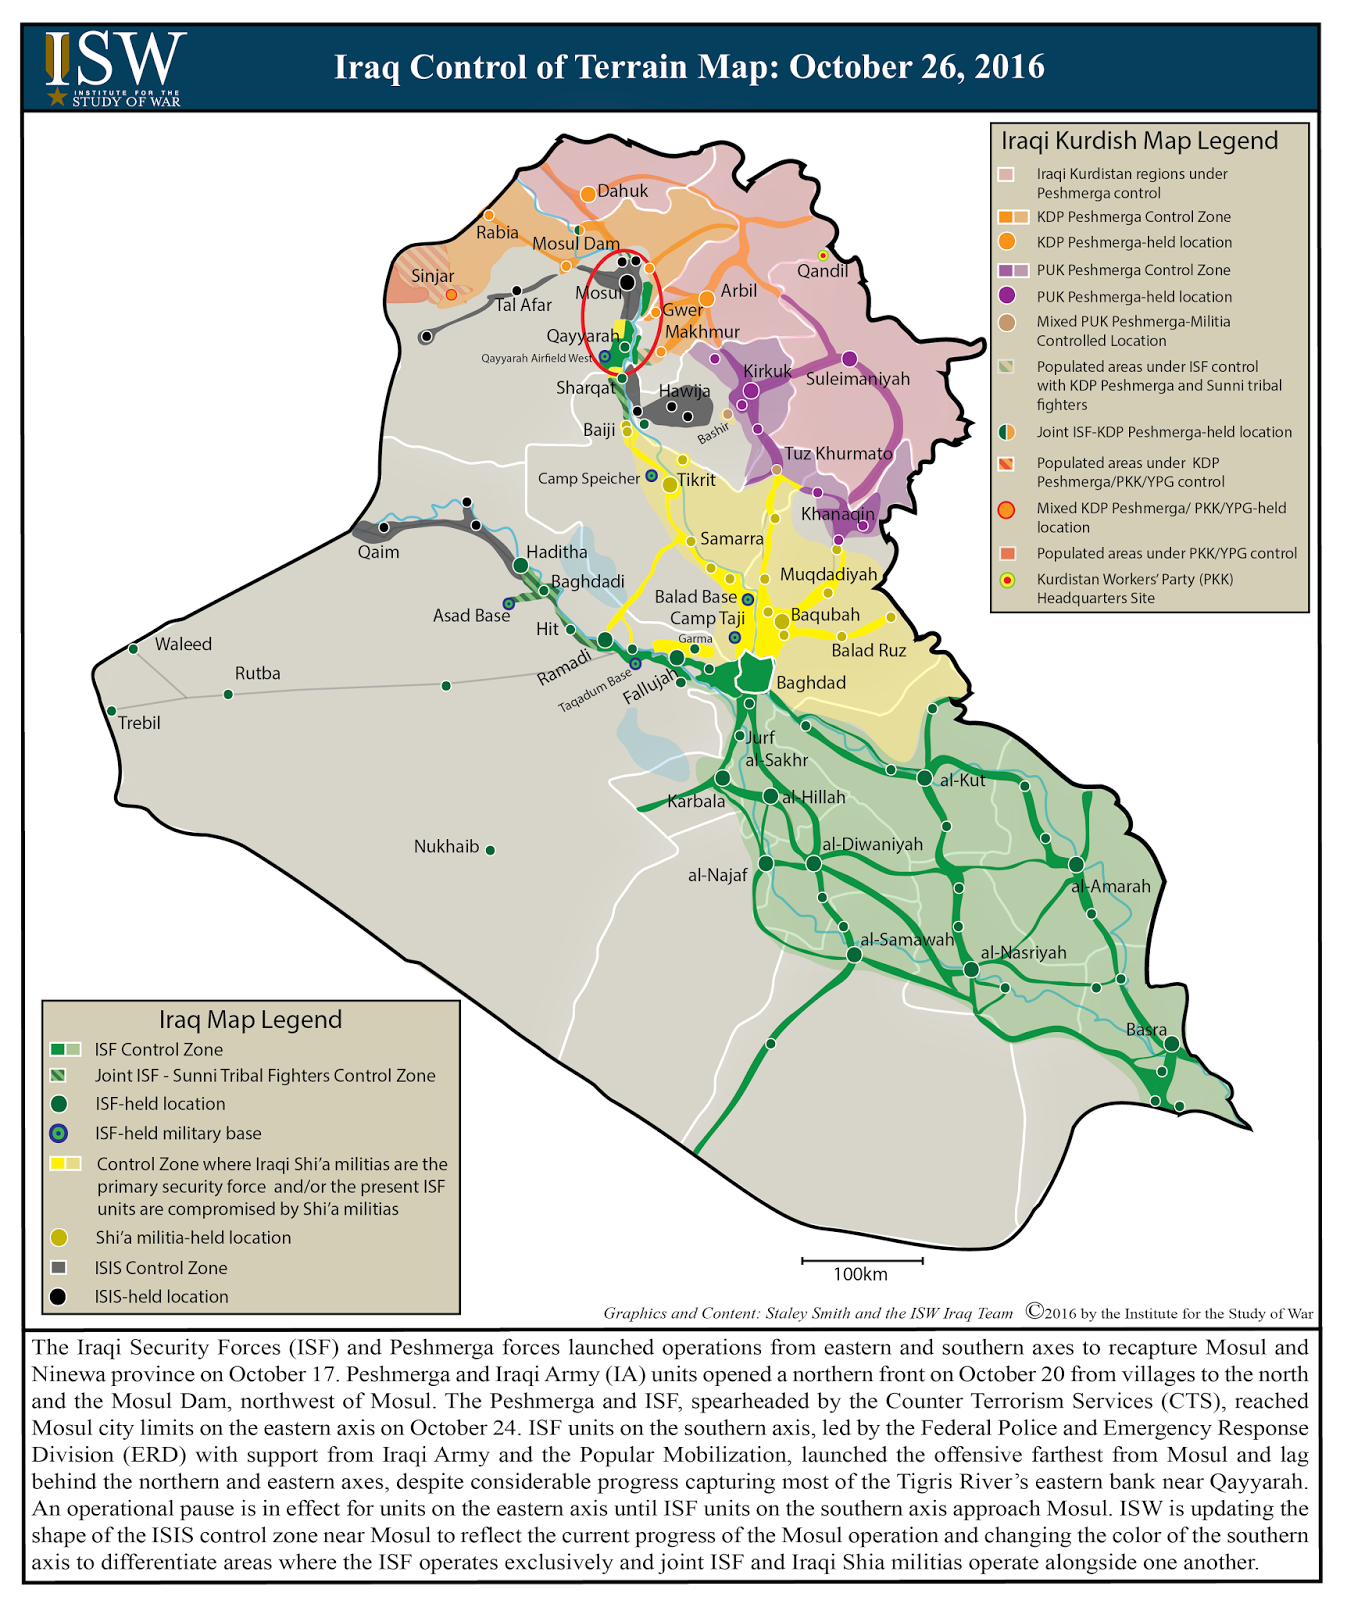 ISW Blog Iraq Control of Terrain Map October 26 2016